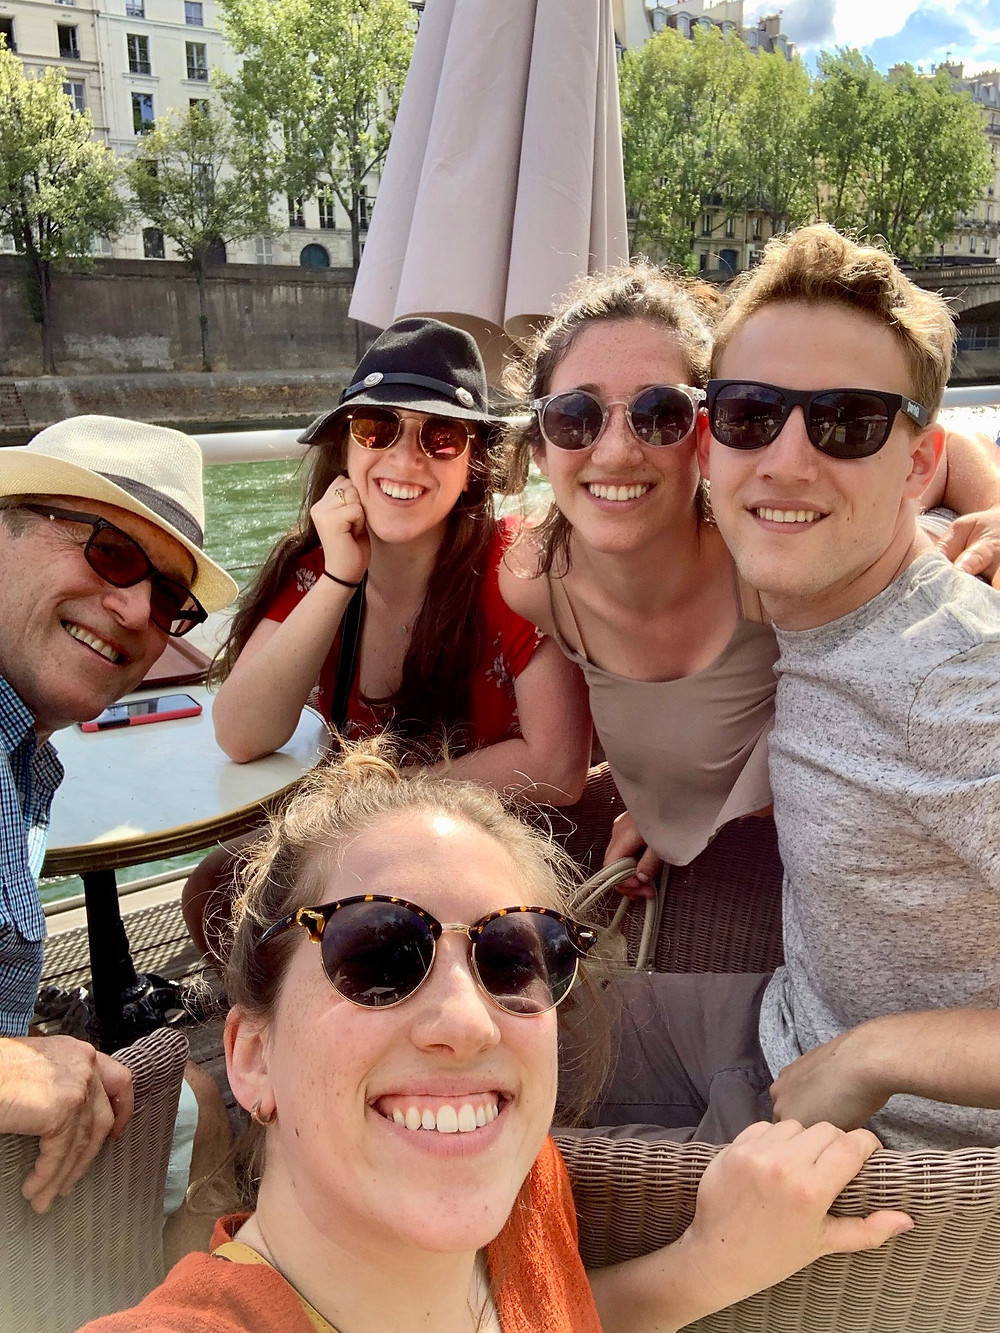 George with my family in Paris drinking on the Seine in 2019.